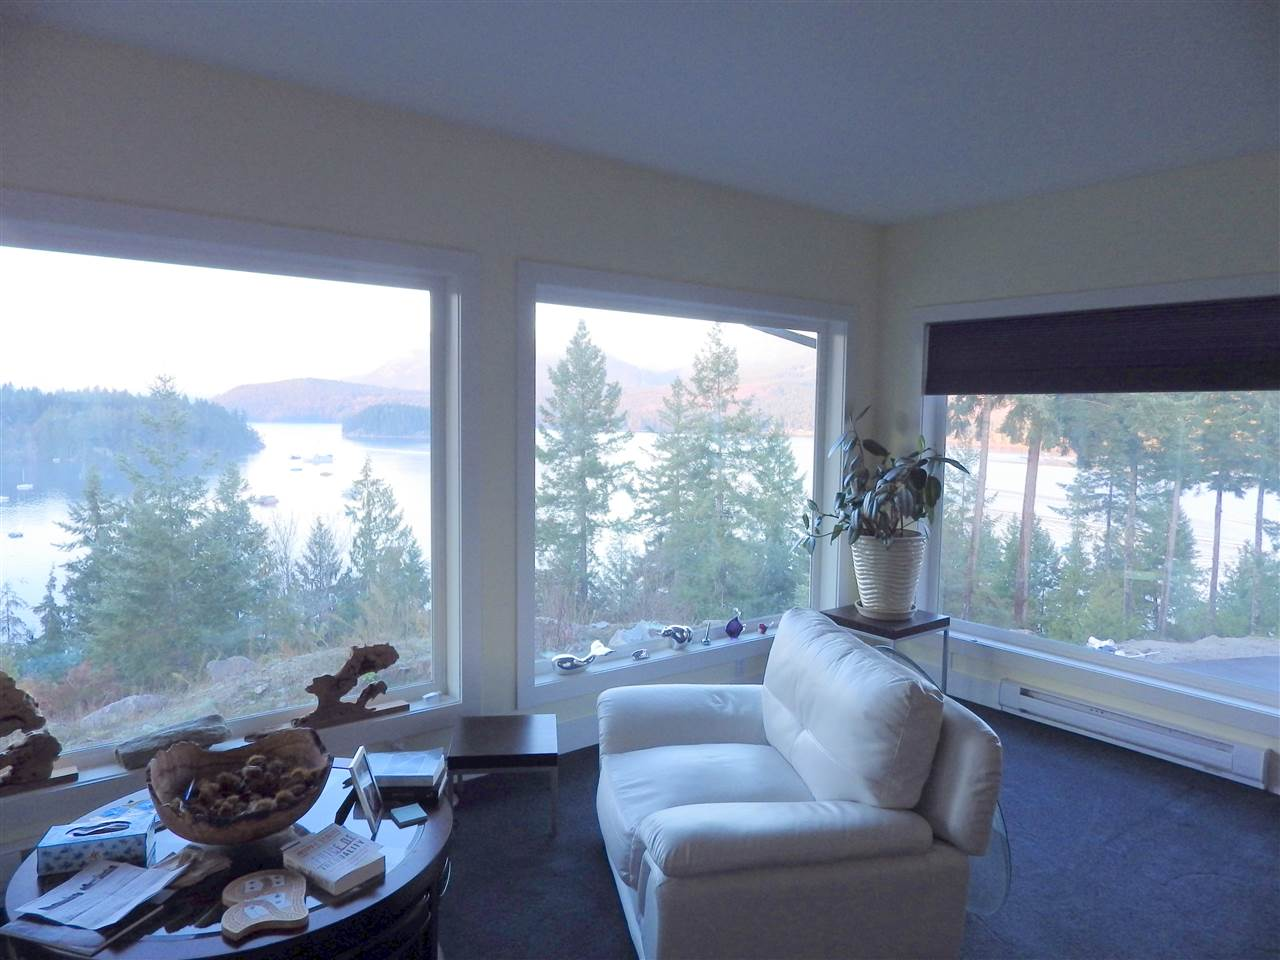 Photo 6: Photos: 7 5778 MARINE Way in Sechelt: Sechelt District Townhouse for sale (Sunshine Coast)  : MLS®# R2222376